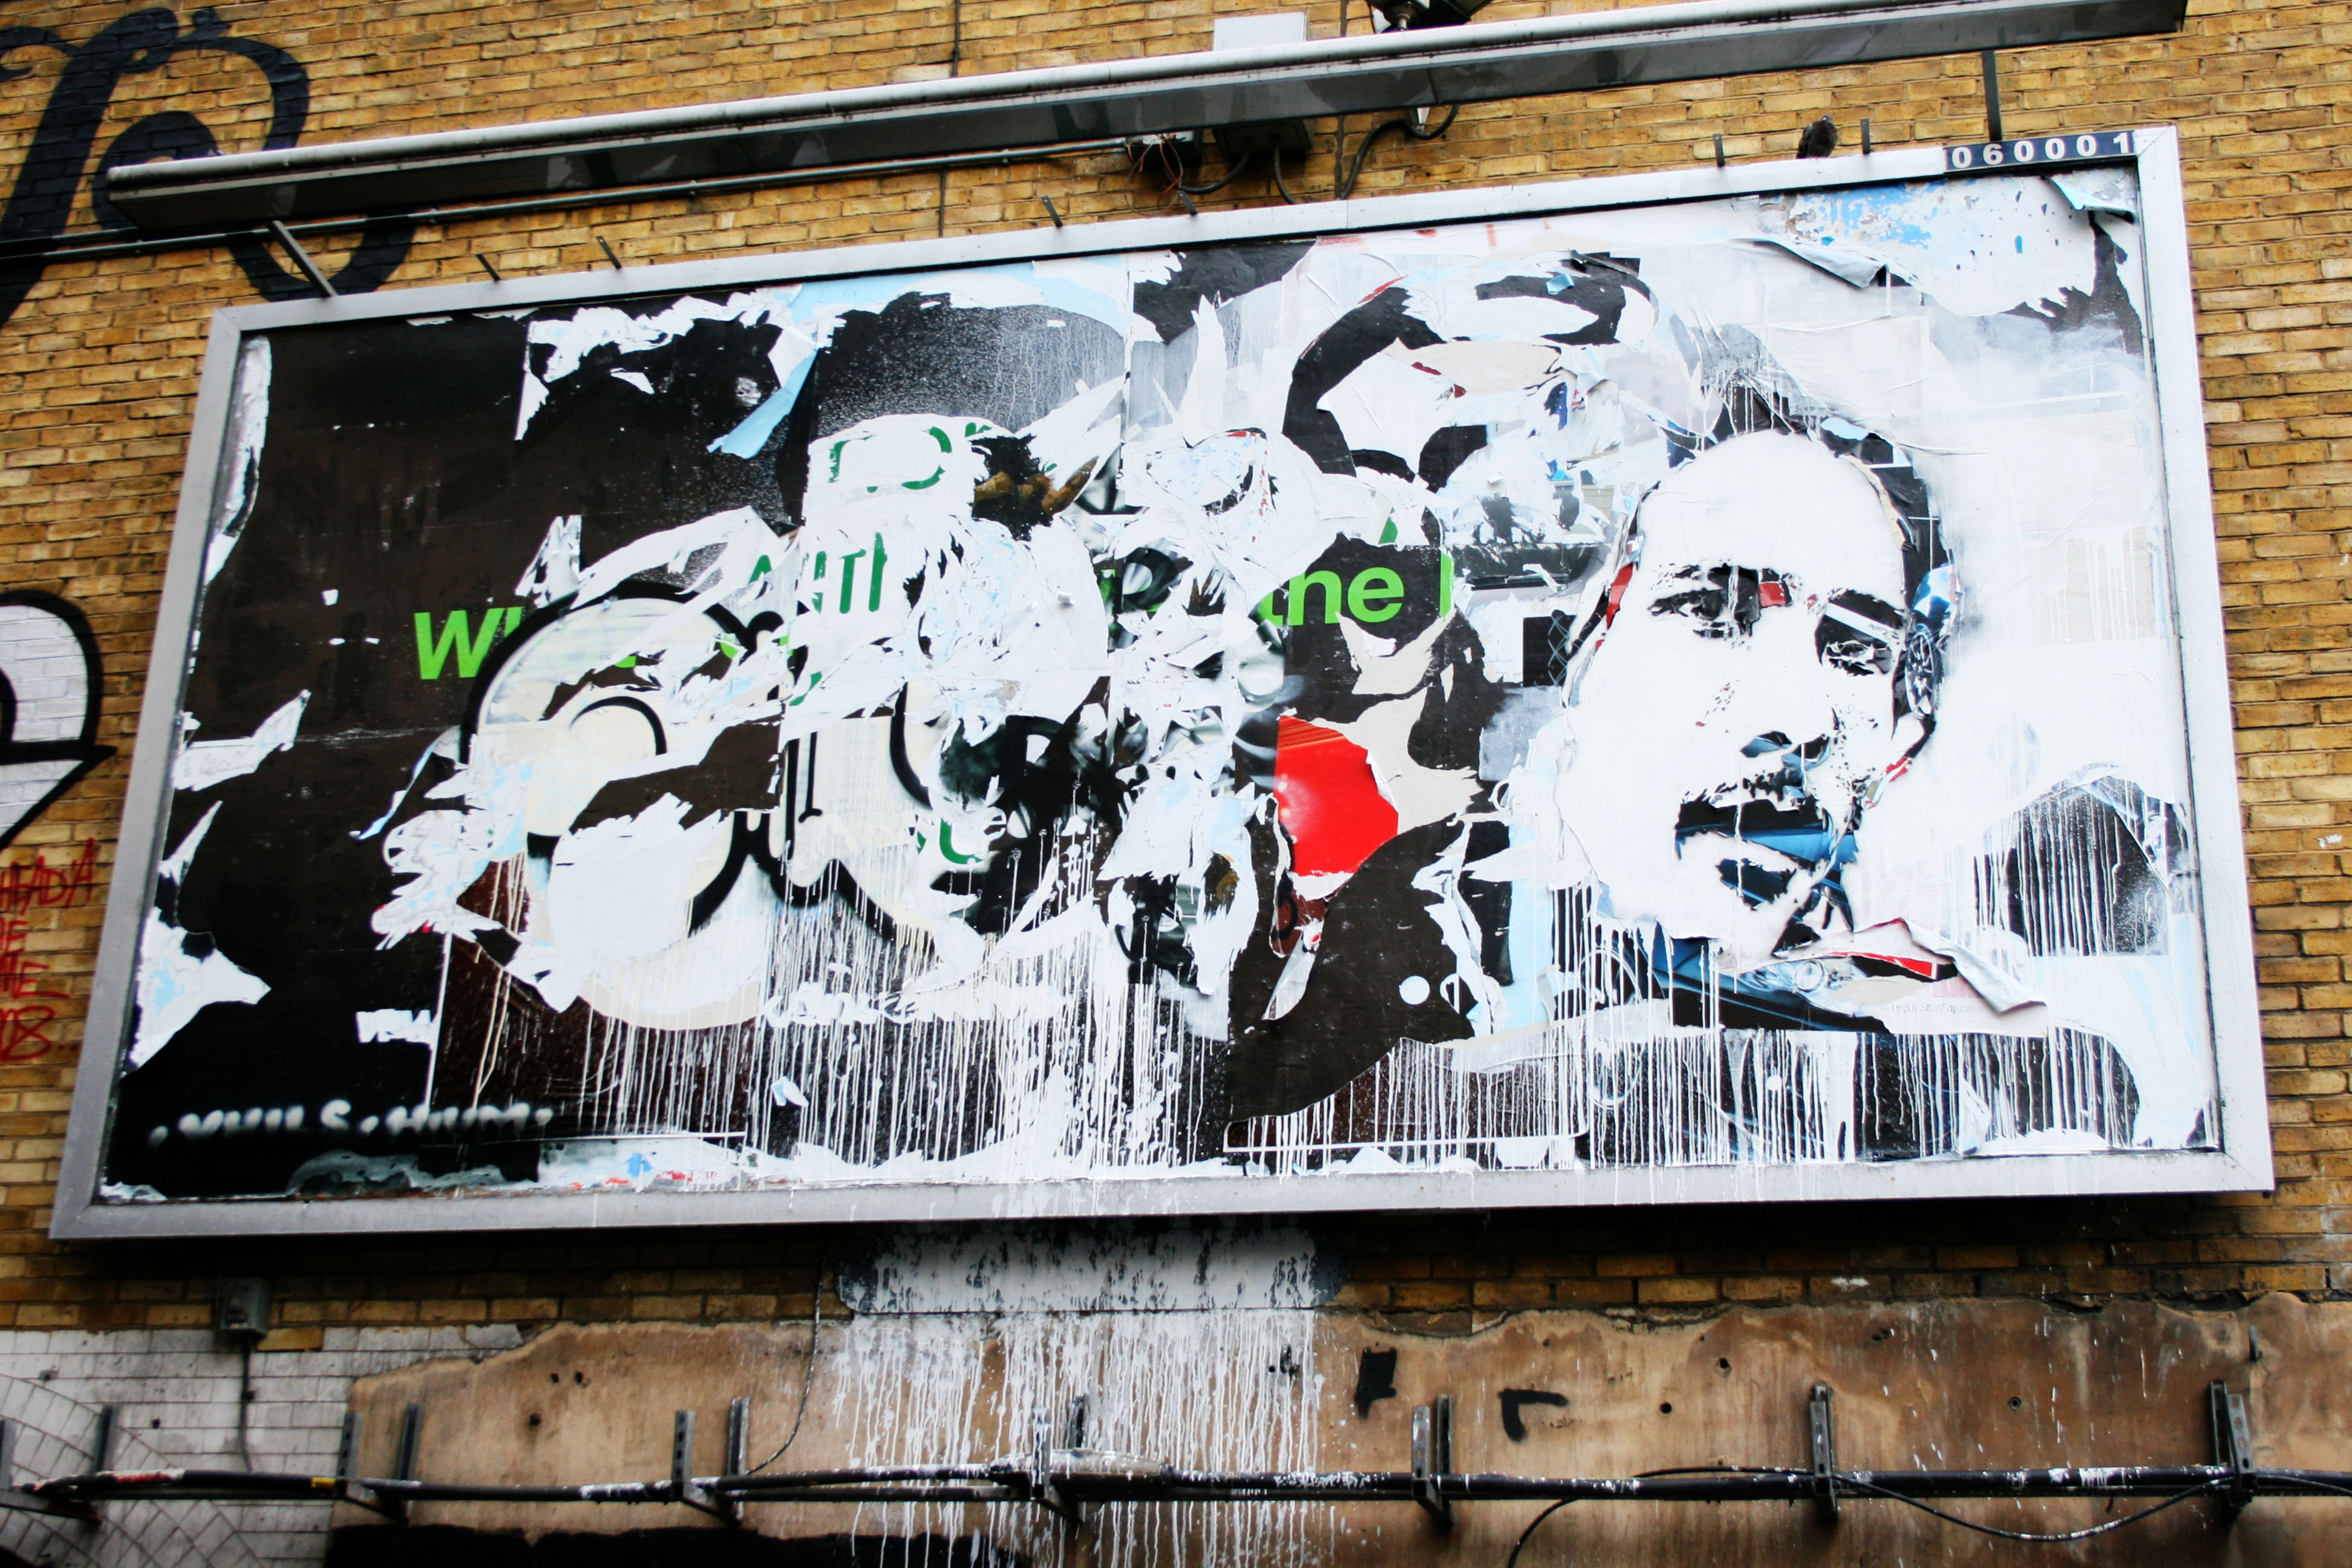 Street Art by Vhils at the entrance to the Leake Street Tunnel at Cans Festival 2 - September 2009